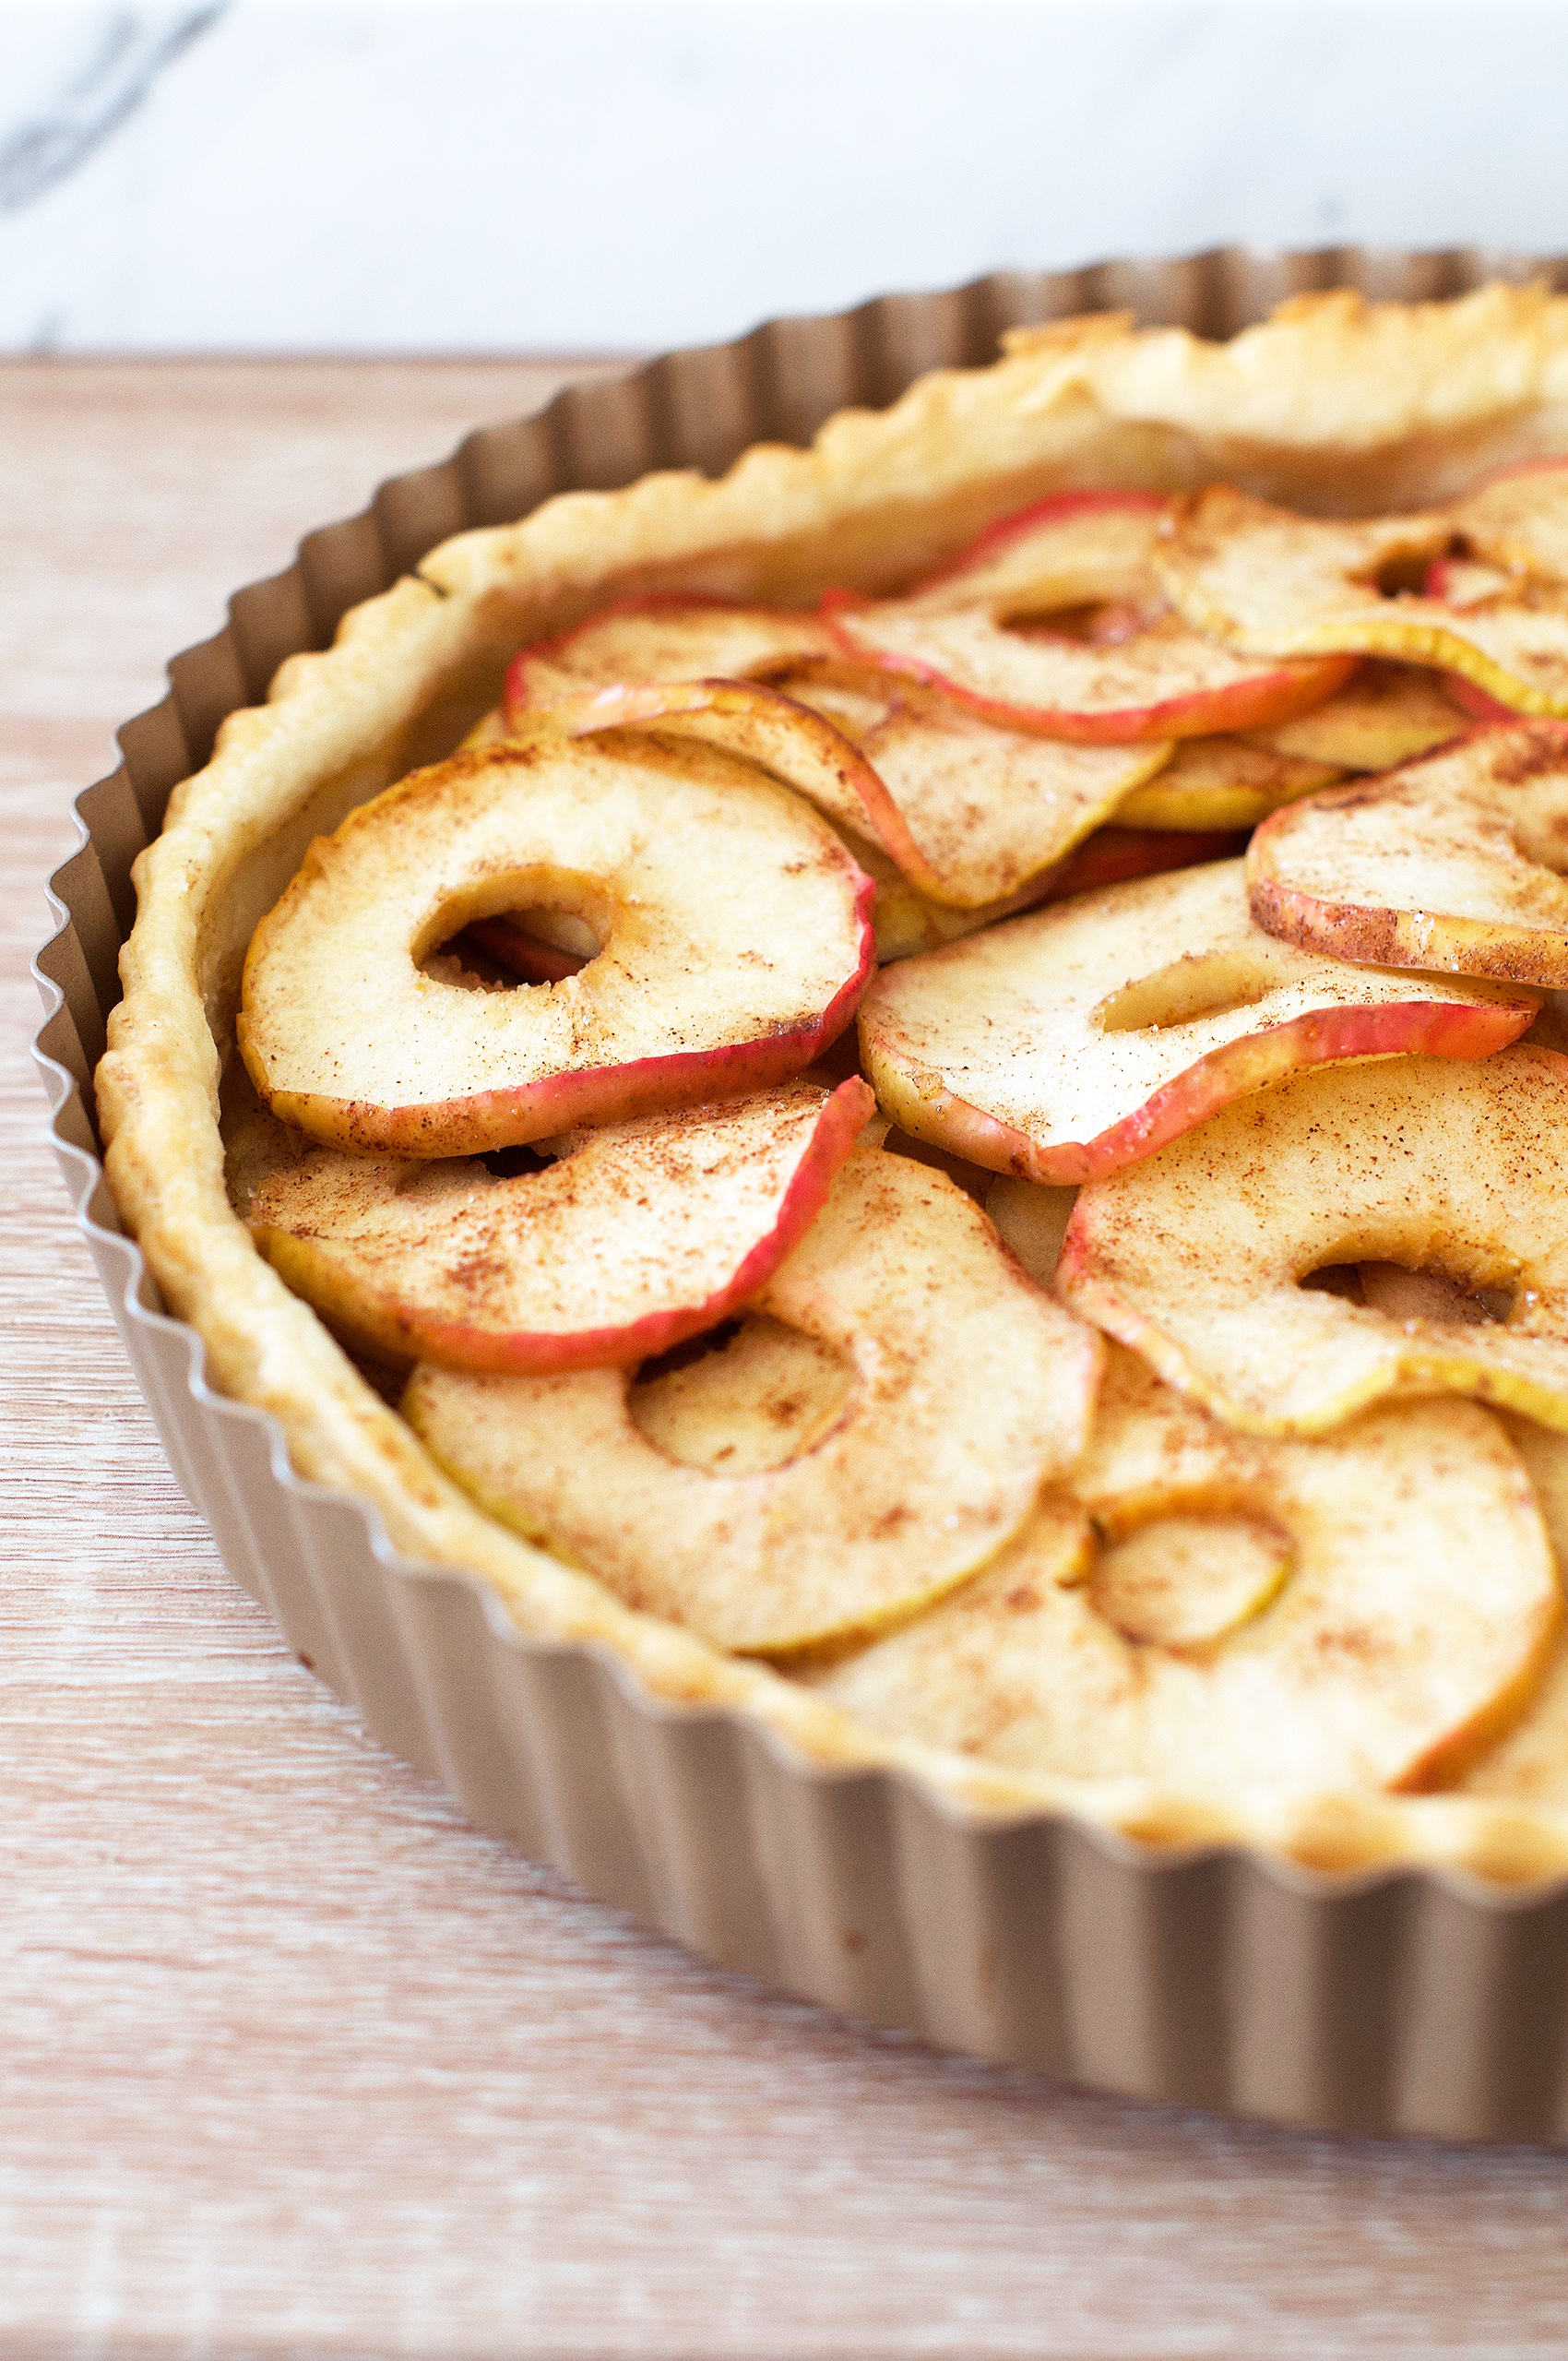 Recipe for apple and cinnamon puff pastry tart